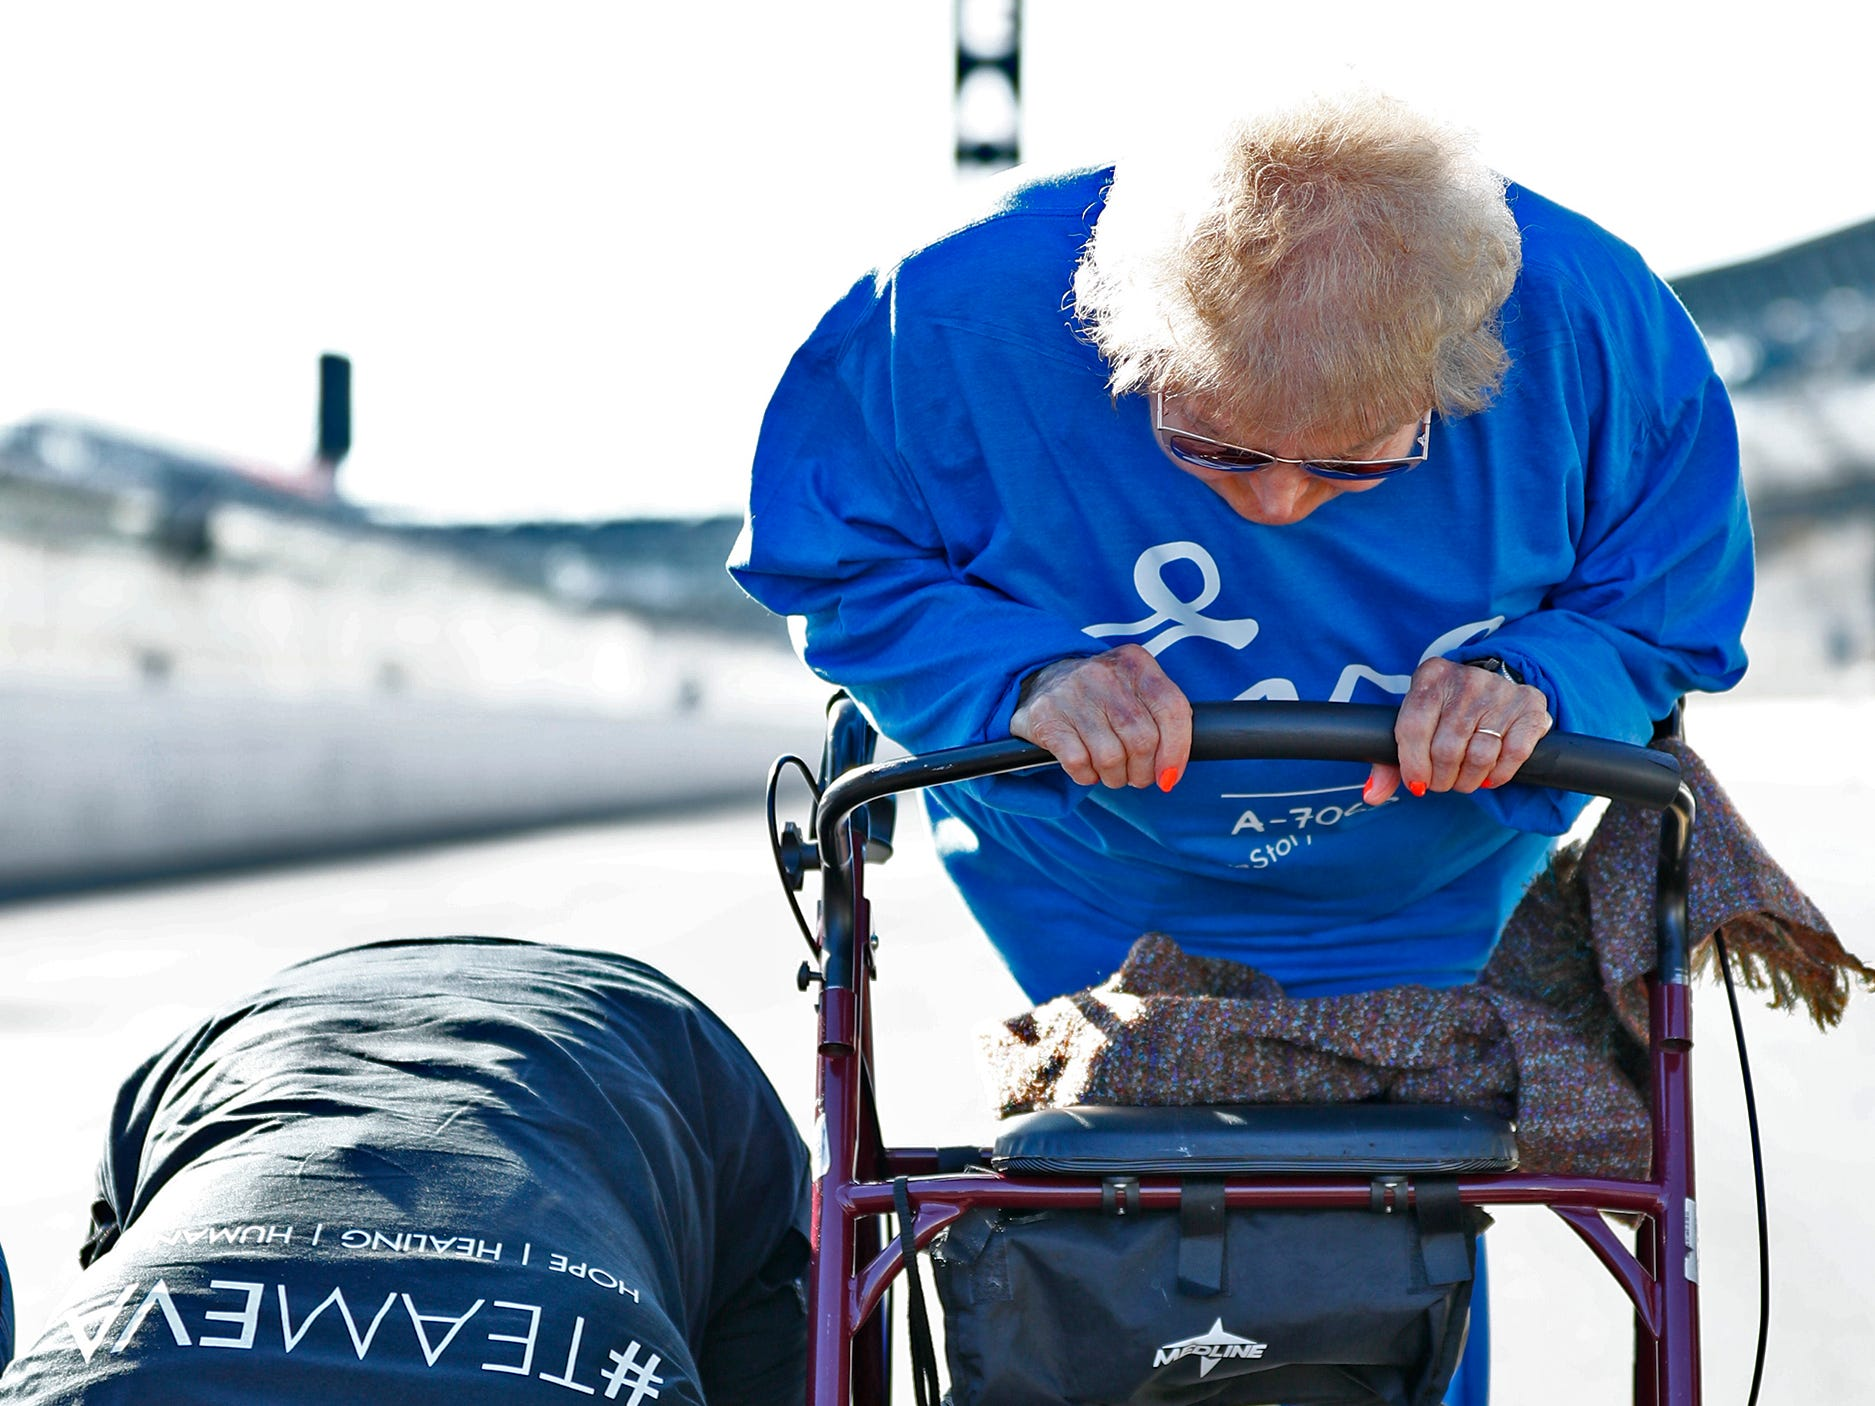 """Holocaust survivor Eva Kor, right, joins others """"kissing the bricks,"""" at the Indianapolis Motor Speedway Yard of Bricks, Wednesday, Oct. 24, 2018, midway during the pace-setting run for the 2019 OneAmerica 500 Festival Mini-Marathon.  The 500 Festival will donate $1 to the CANDLES Holocaust Museum in Terre Haute for every mini-marathon participant who finishes the 2019 race in a better time than Team Eva.  Kor ran the very last of the relay race."""